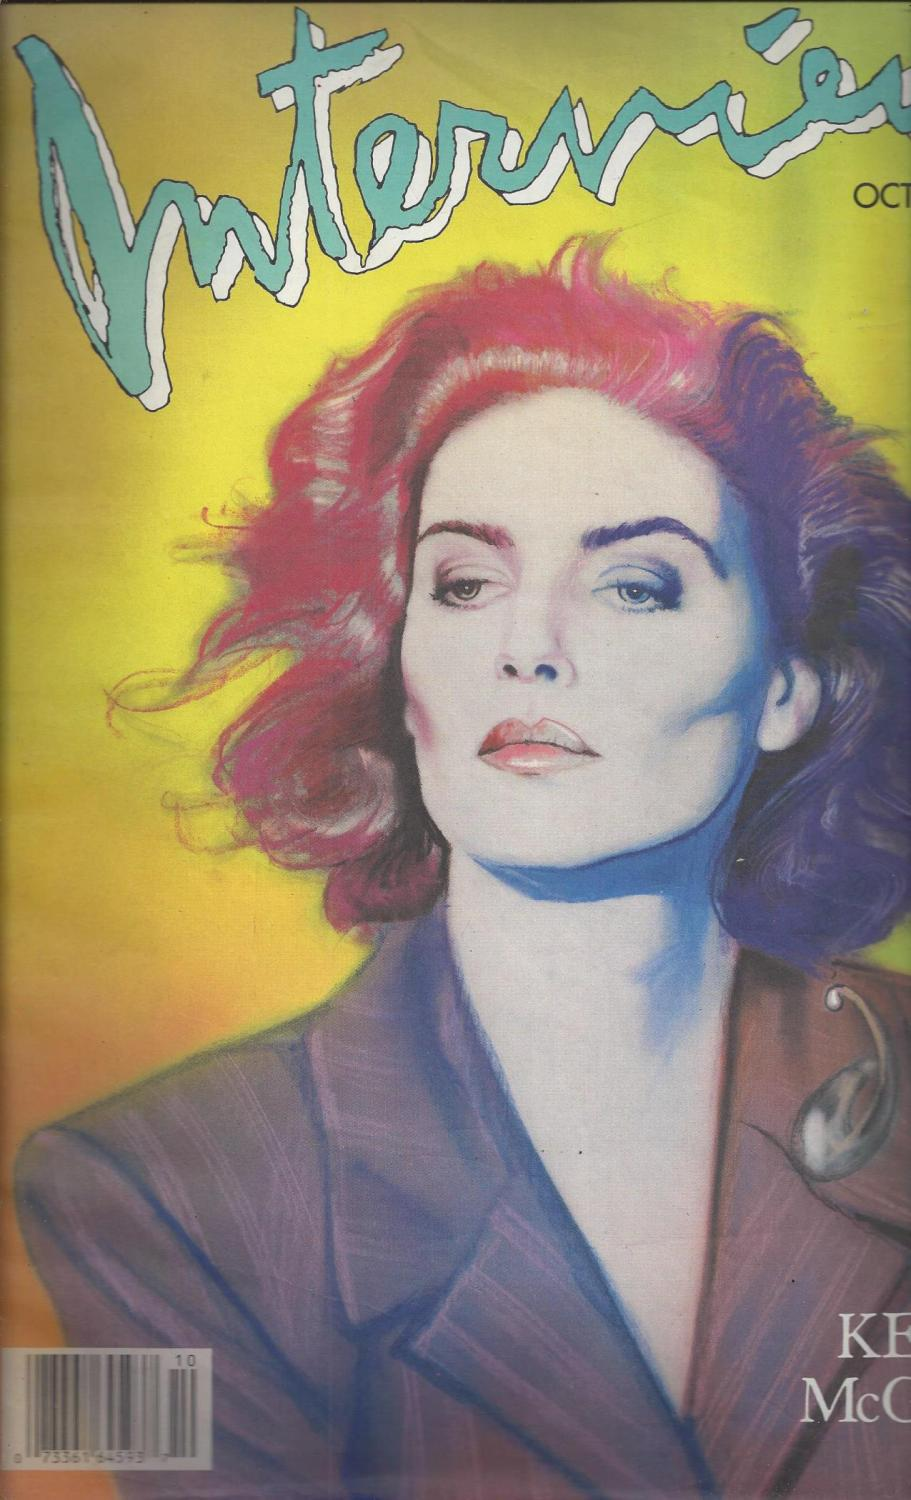 Image for Rare 1987 Andy Warhol's Interview Magazine - Kelly McGillis - Vol. XVII No. 10